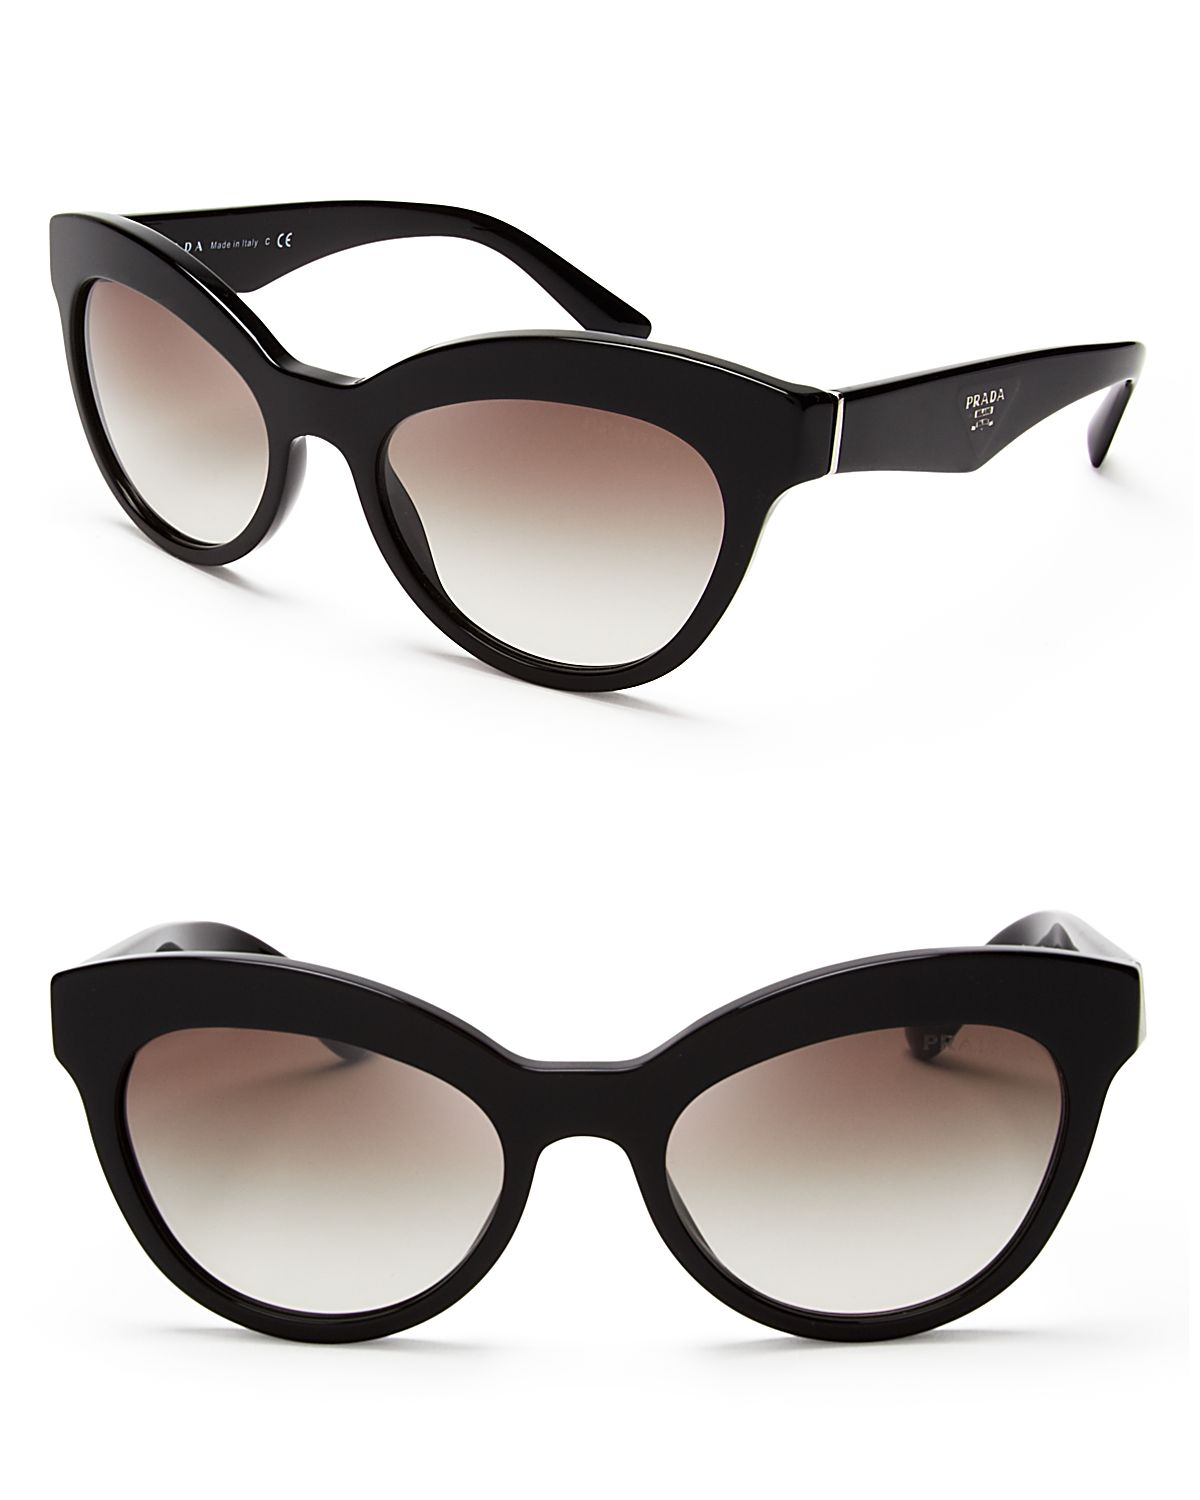 0b7eca89f0d8 spain lyst prada heritage cat eye sunglasses in black beee1 c62ac